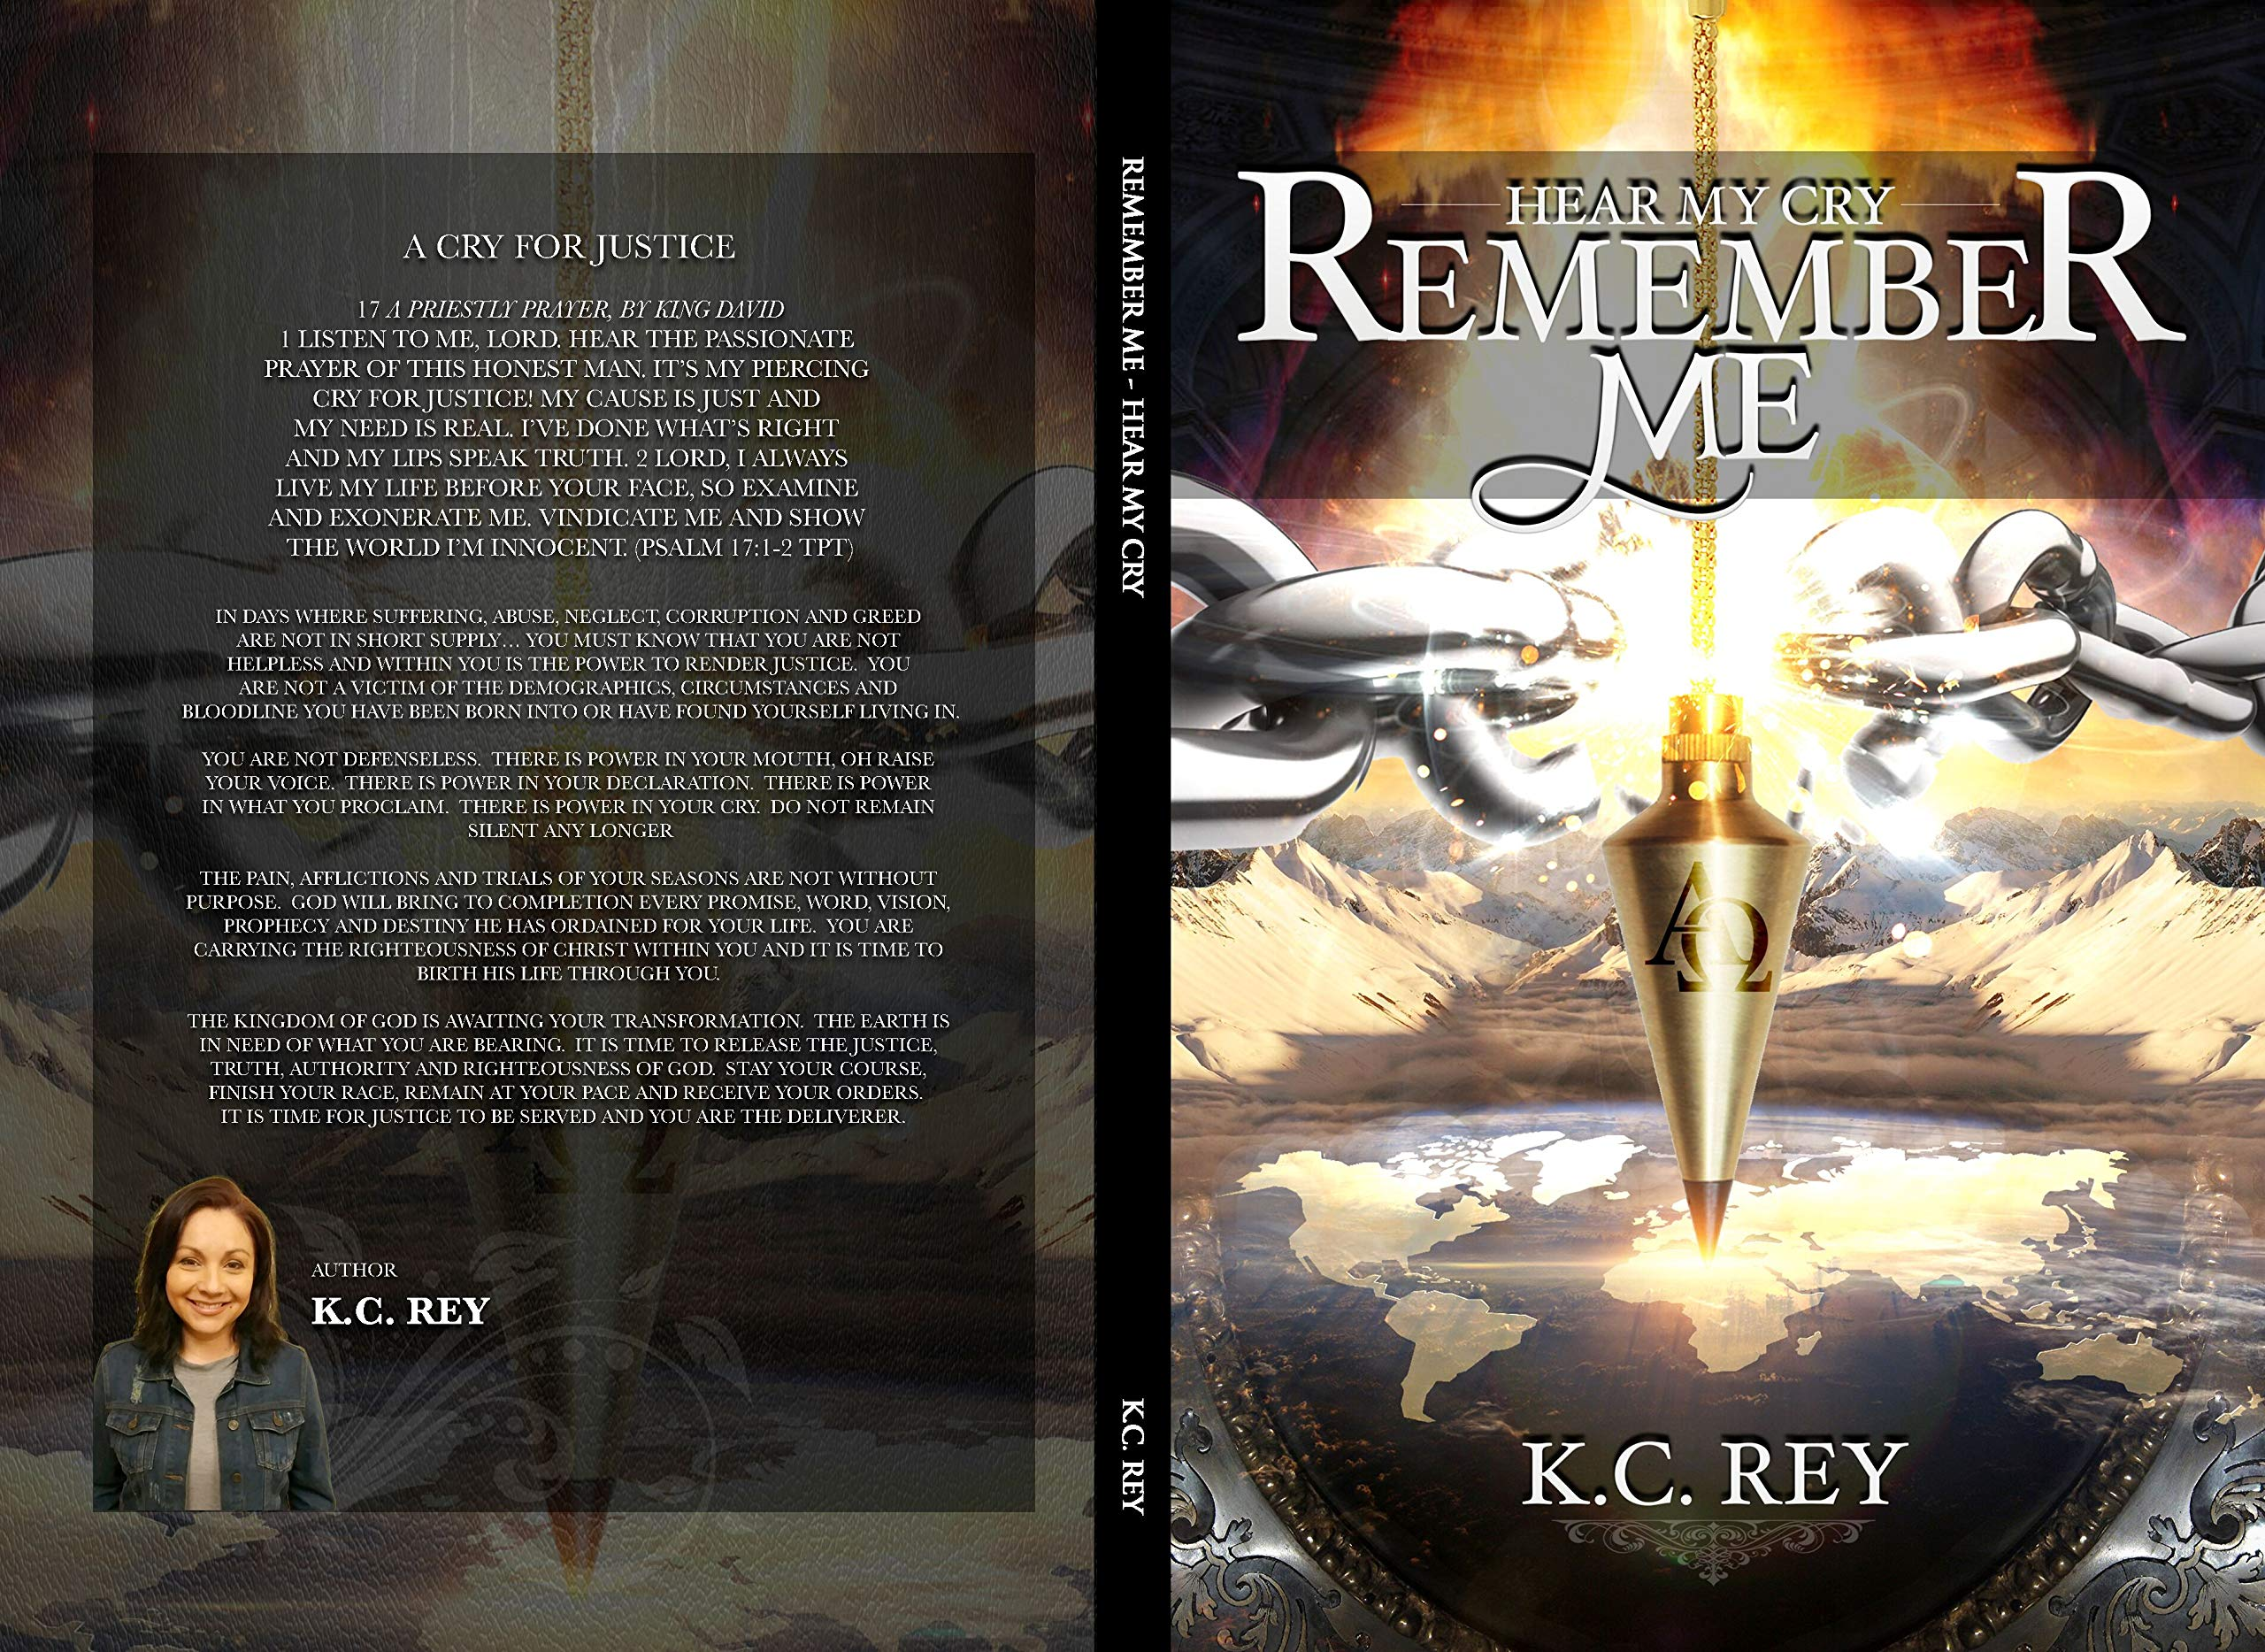 Remember Me: Hear My Cry